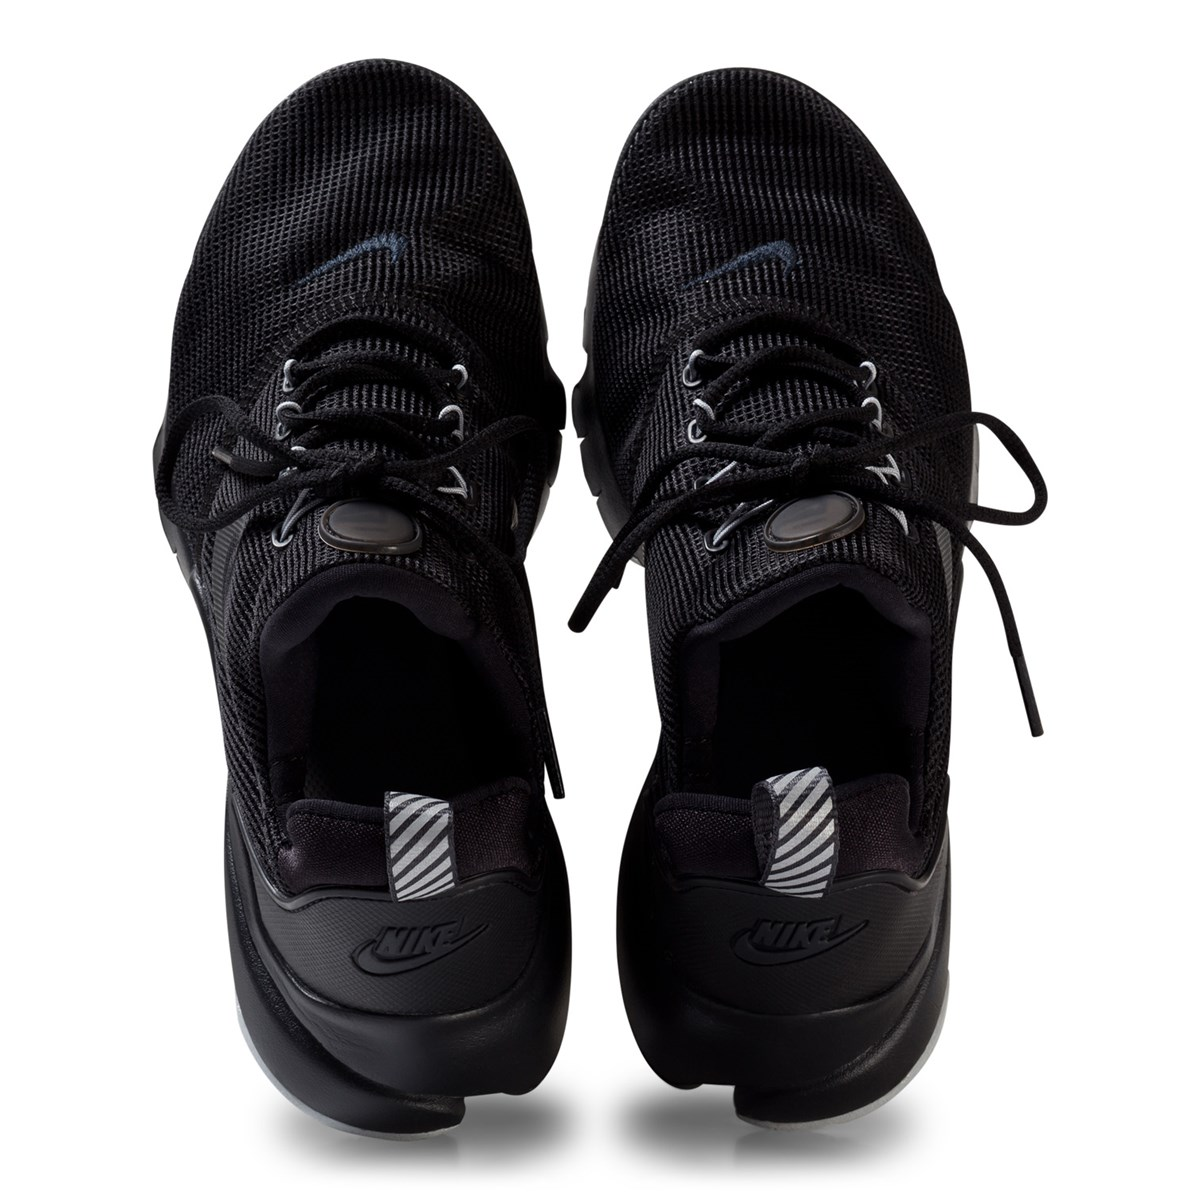 NIKE Presto Fly Junior Shoe BlackAnthracite Babyshop.dk